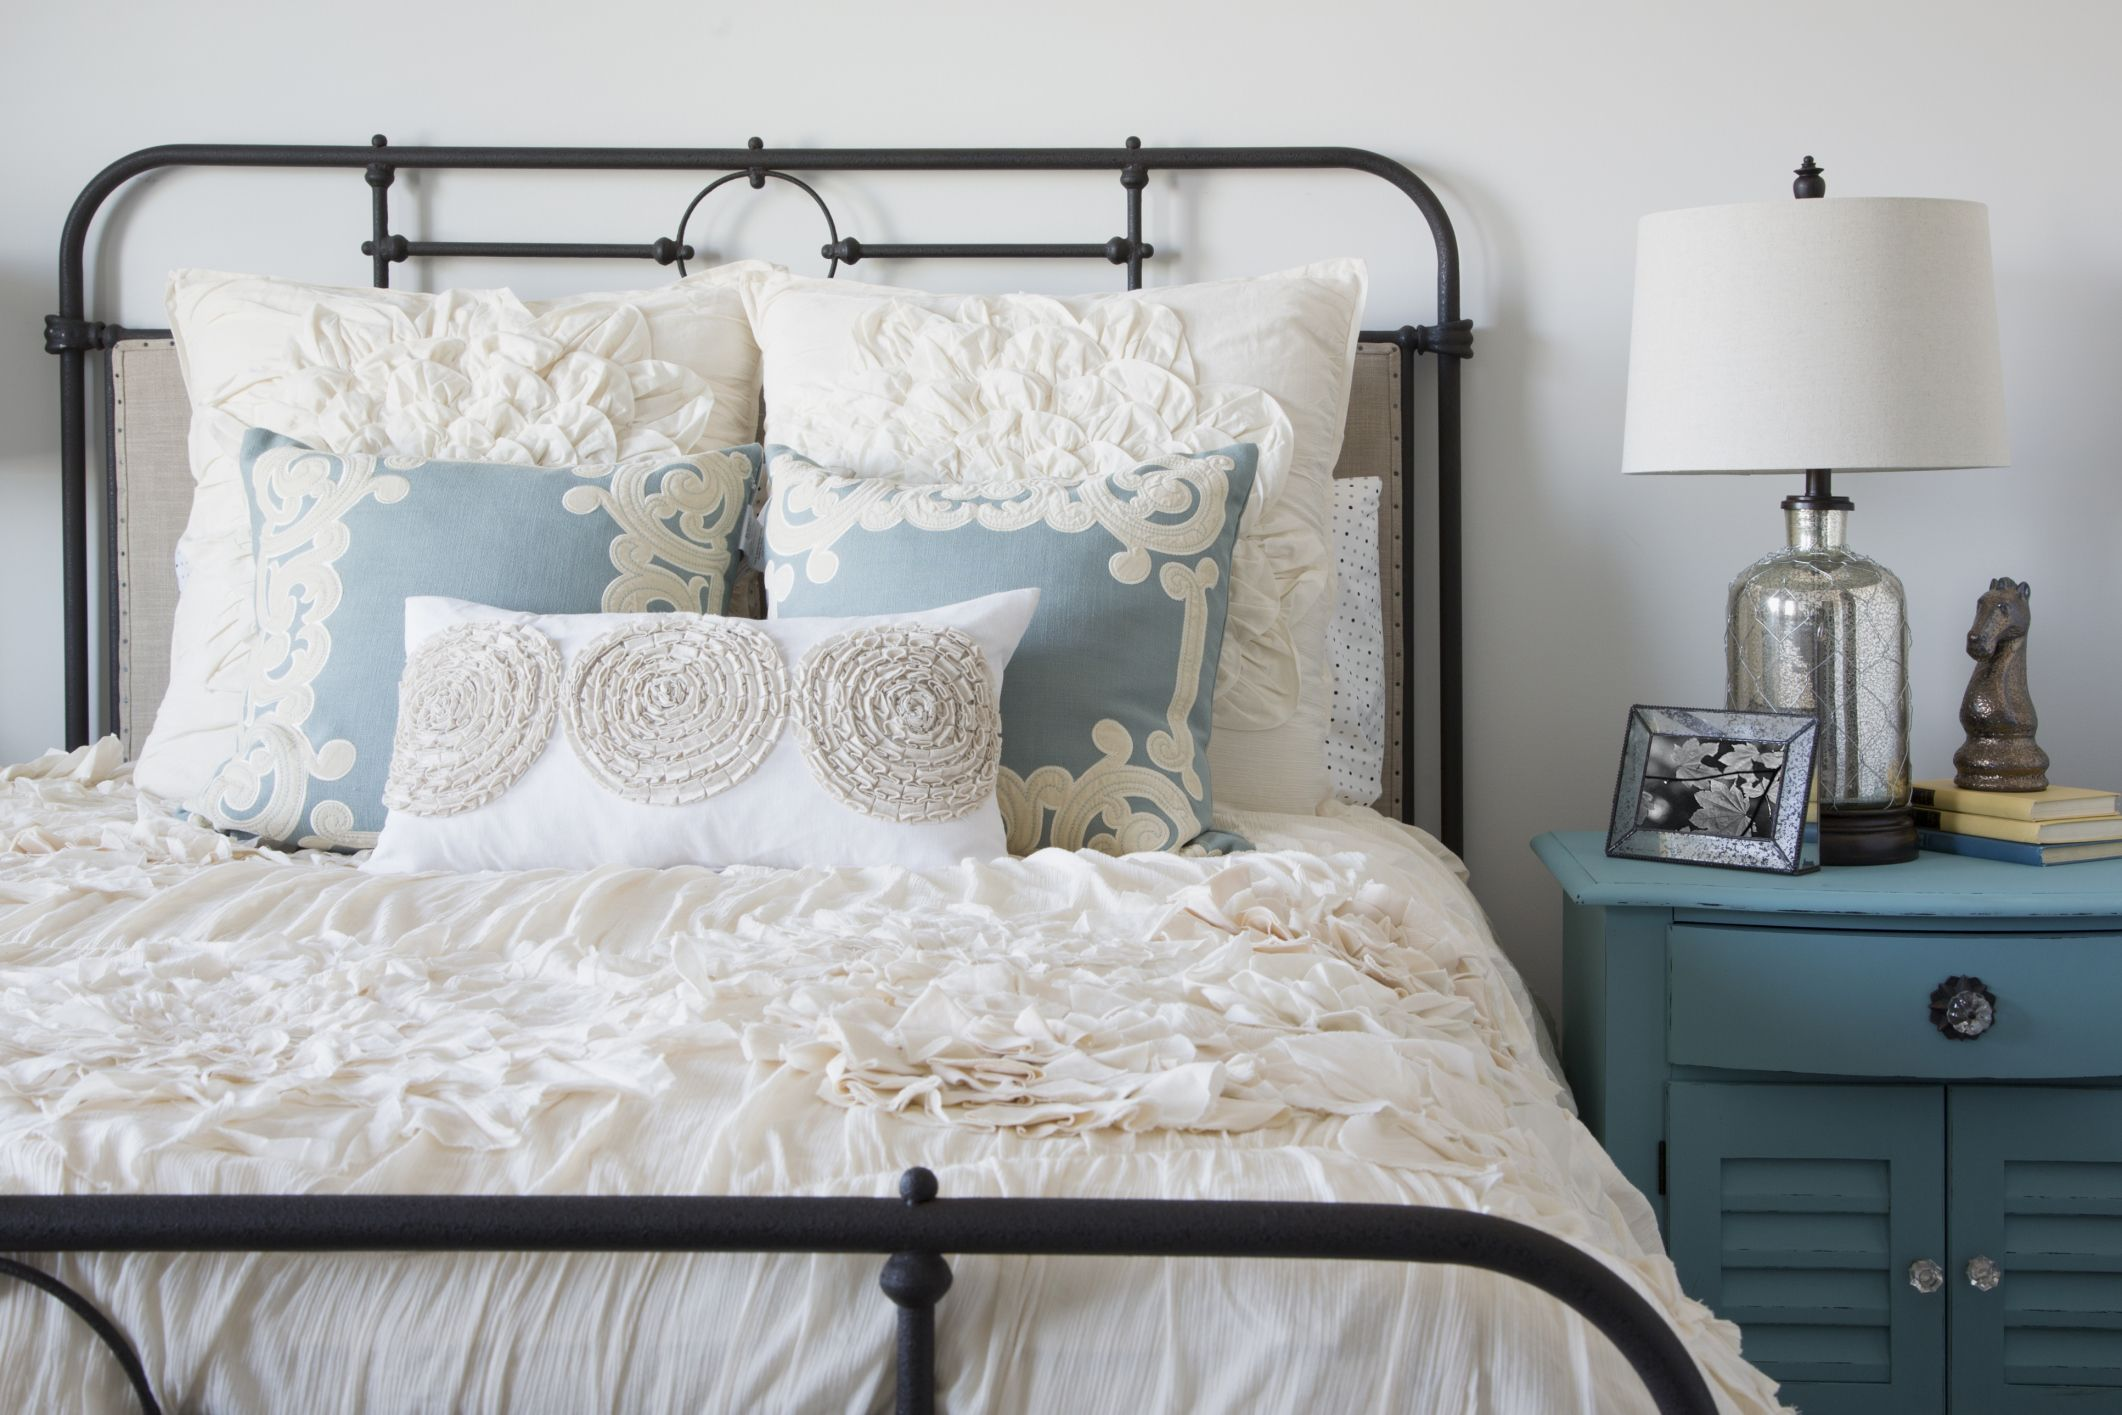 . Guest Bedroom Decorating Ideas   Tips for Decorating a Guest Bedroom